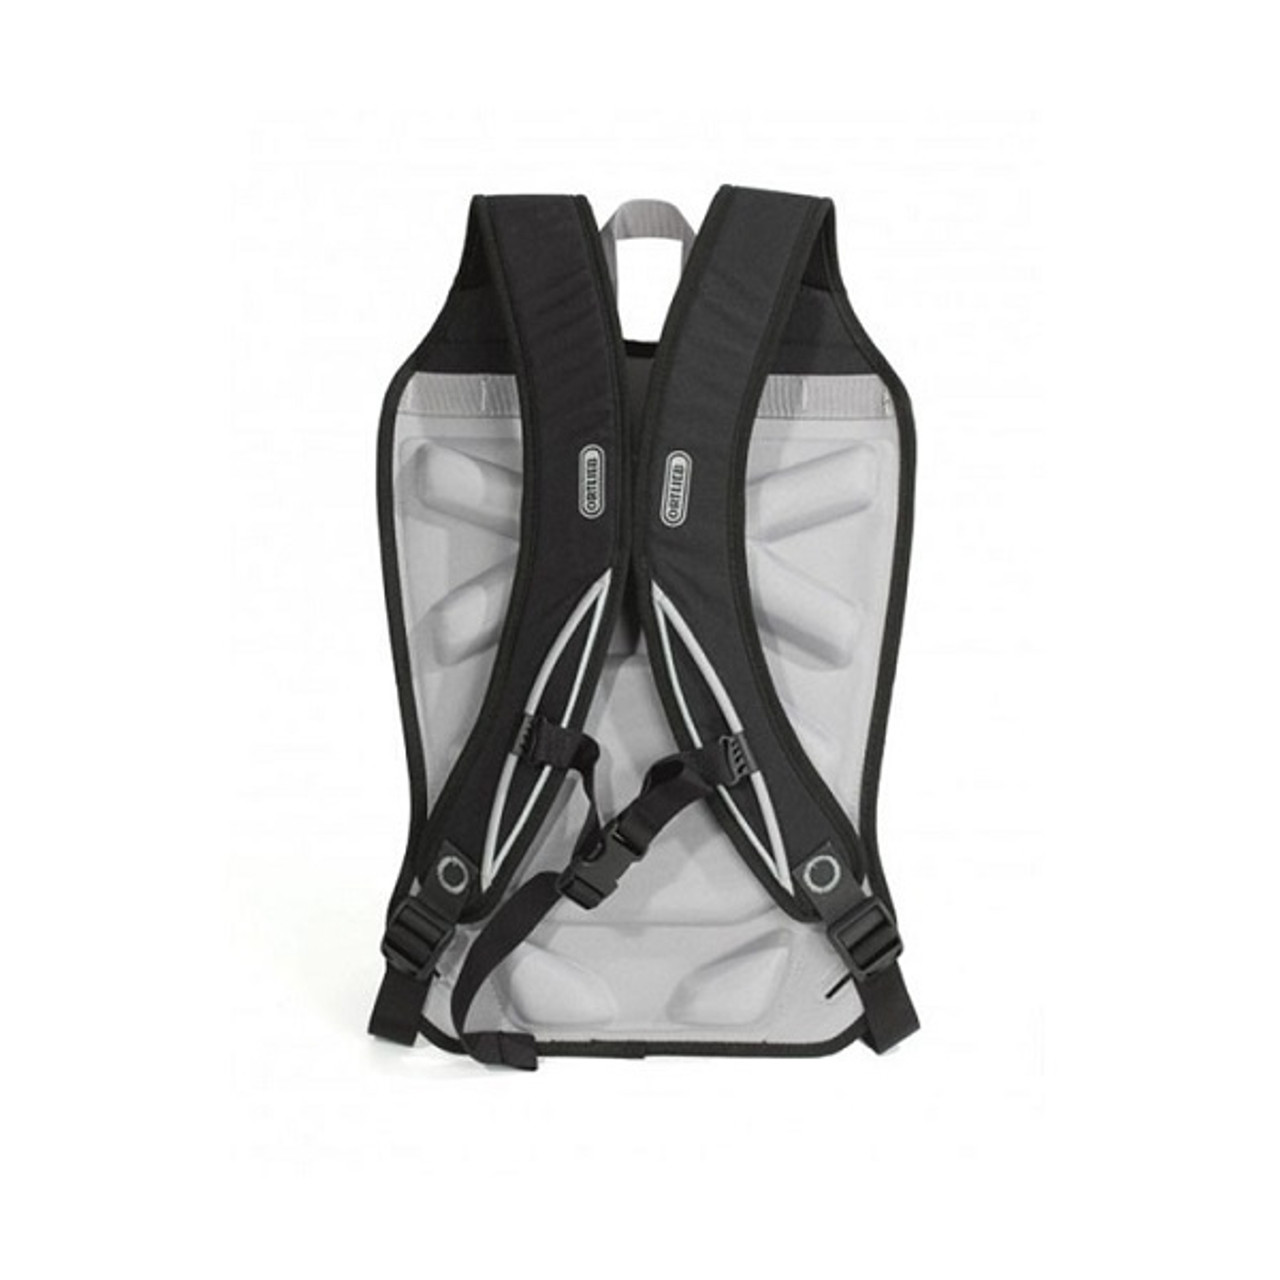 Ortlieb Carrier System for Panniers